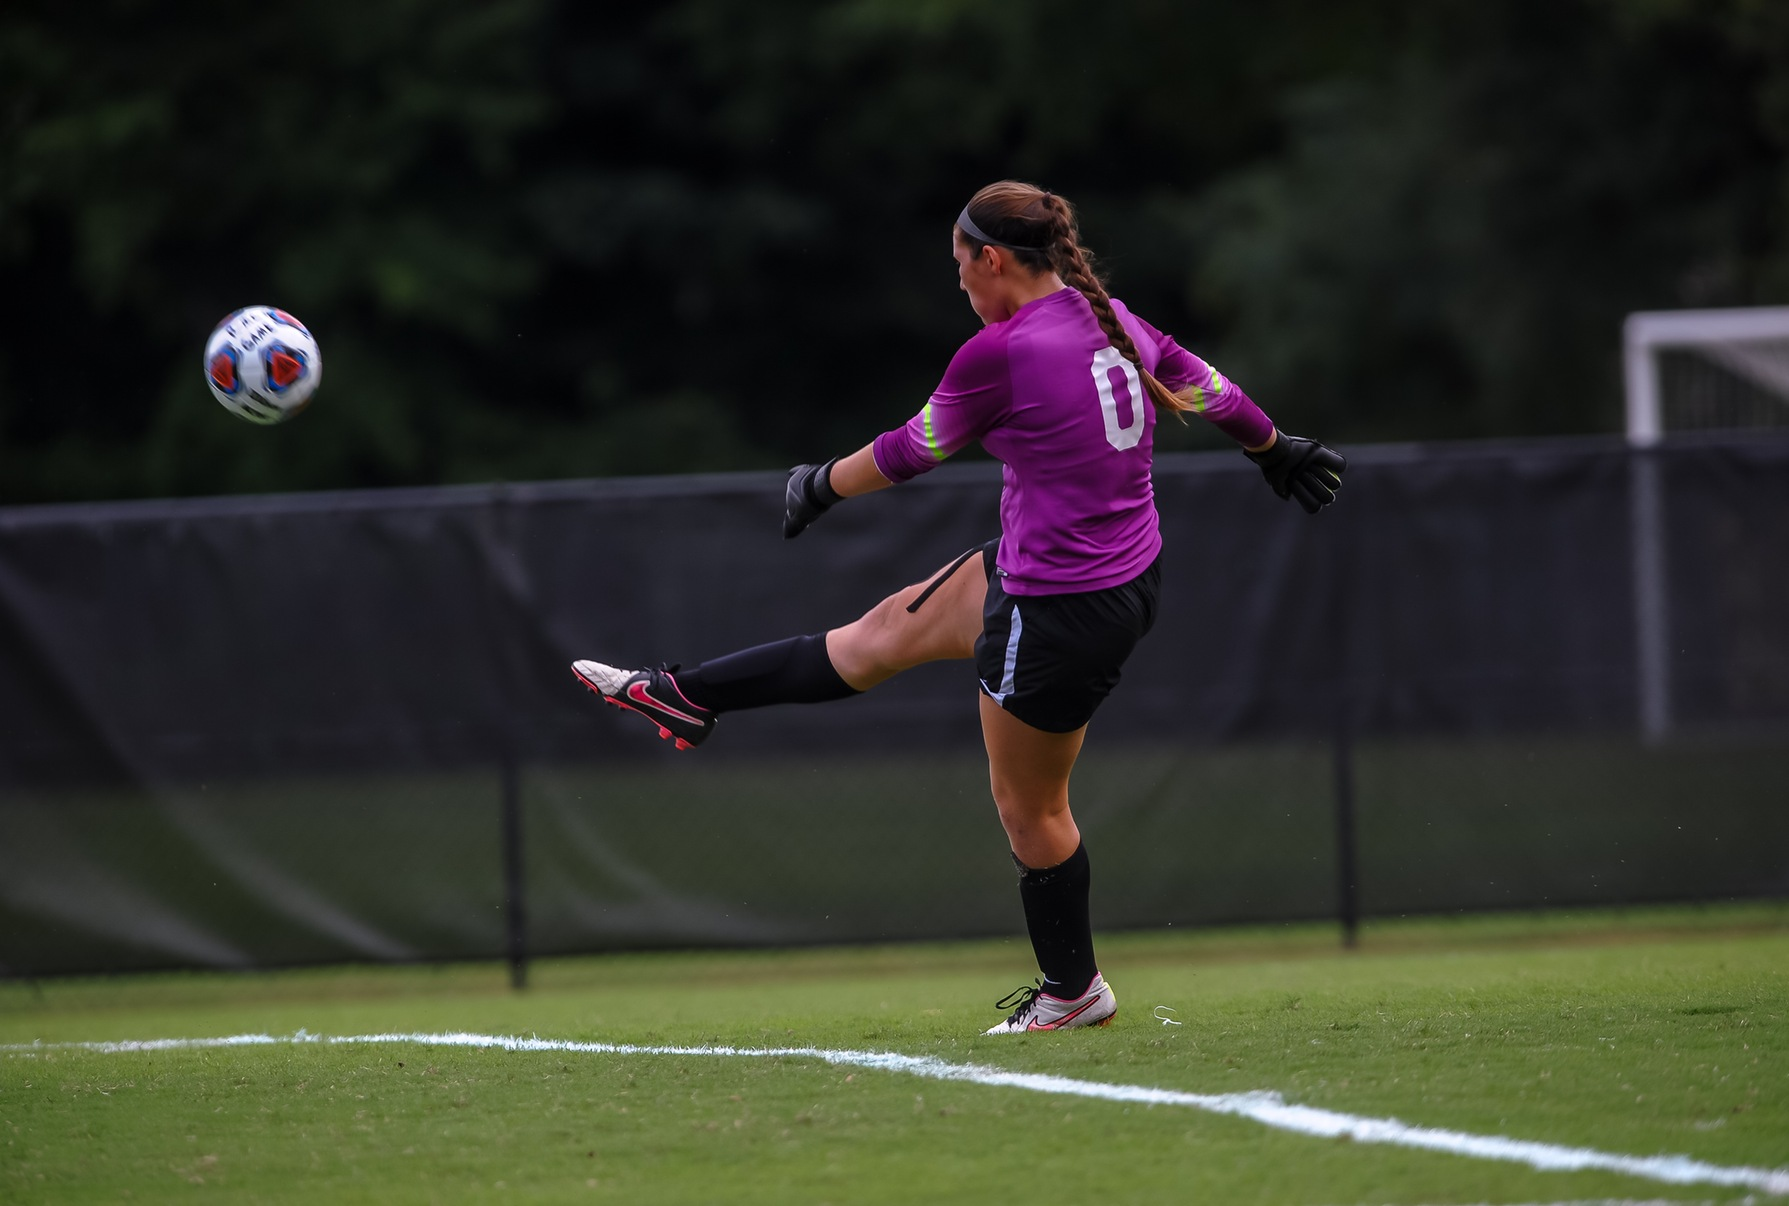 Christina Newman kicking the ball